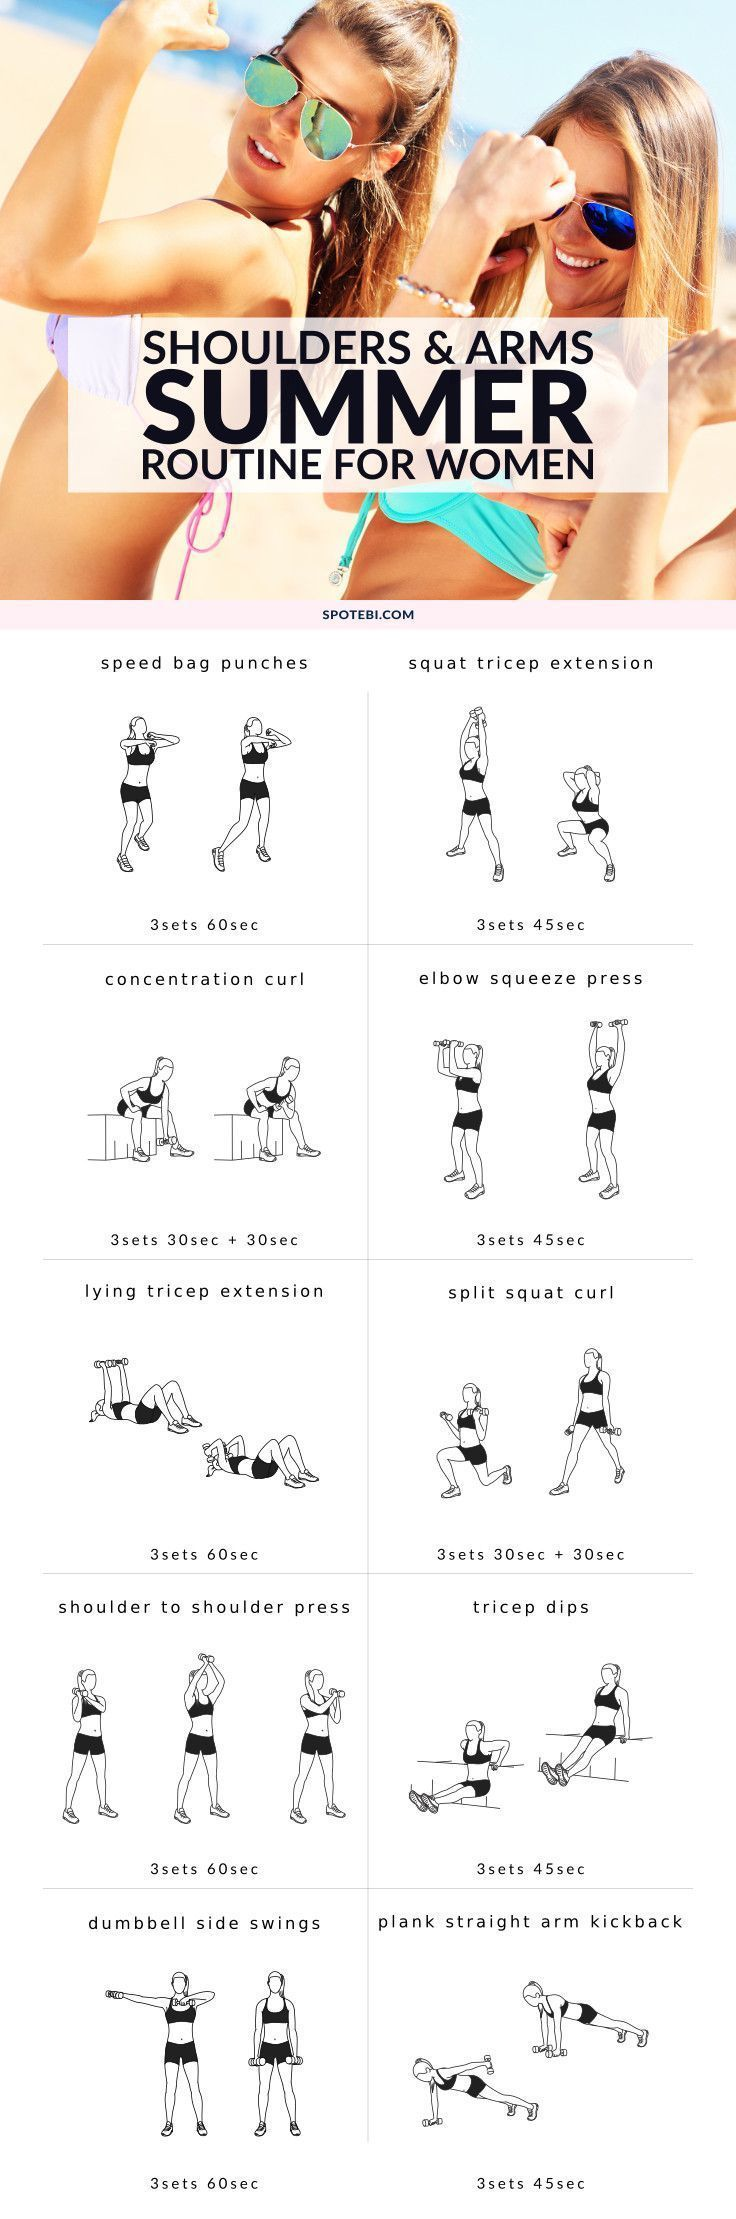 Get your upper body fit and toned for Summer with this shoulders and arms workout for women. A complete 30 minute circuit that combines cardio and strength training moves to create a well-rounded, fat-burning routine. www.spotebi.com/…